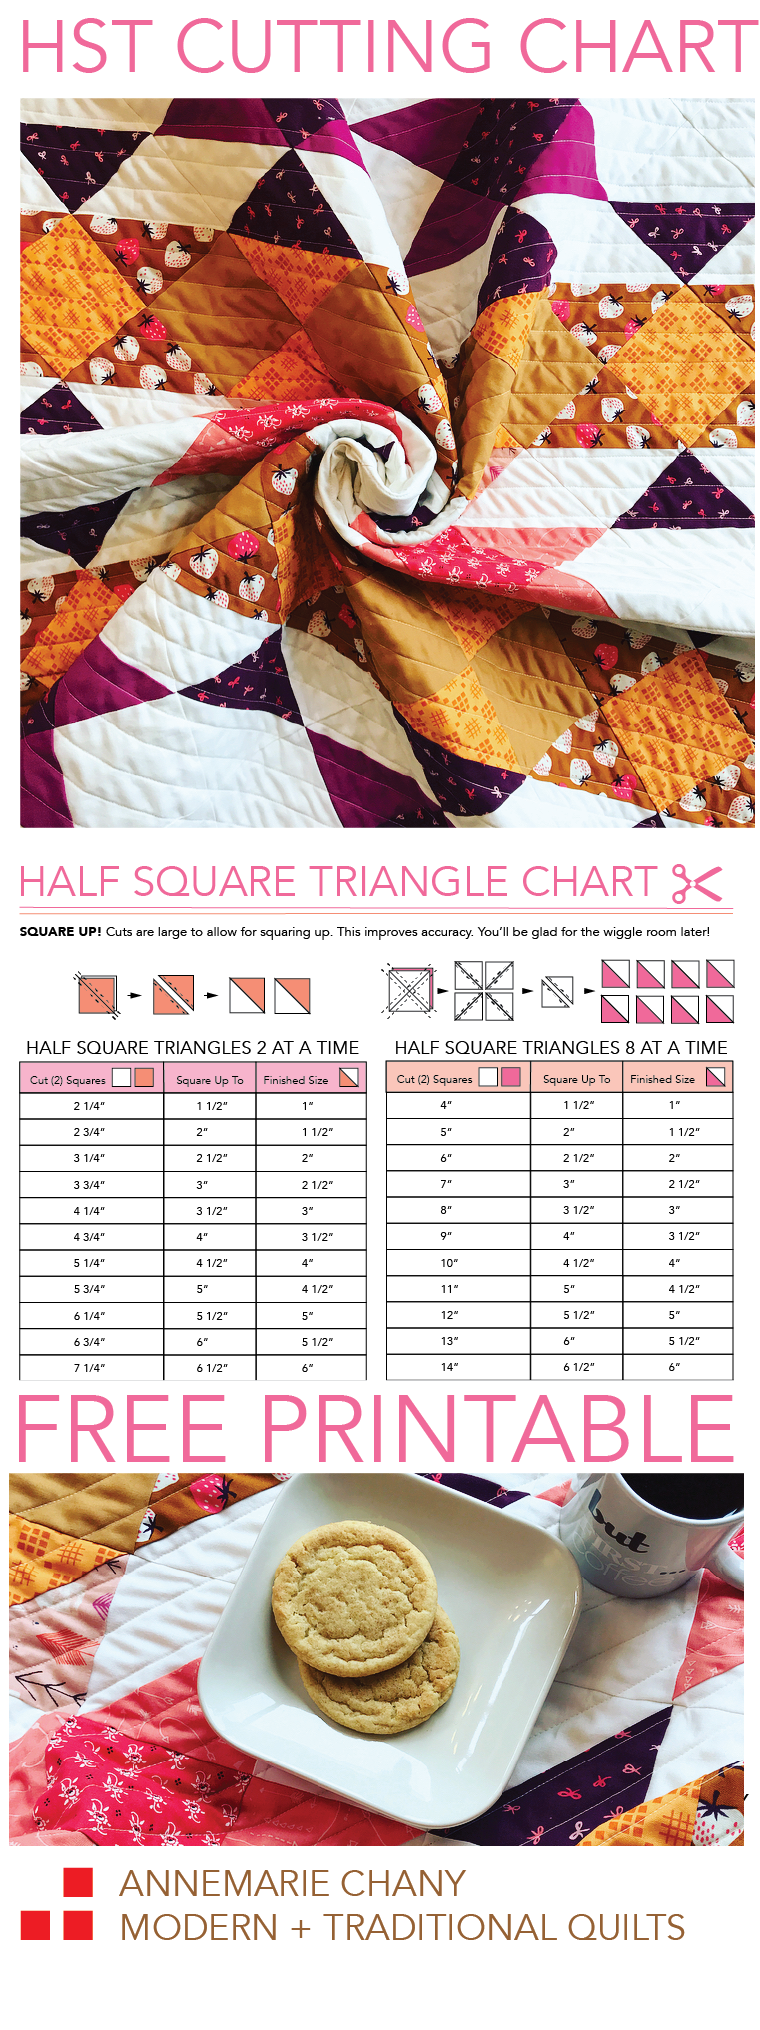 Half Square Triangle Cutting Reference Printable Free Download.png